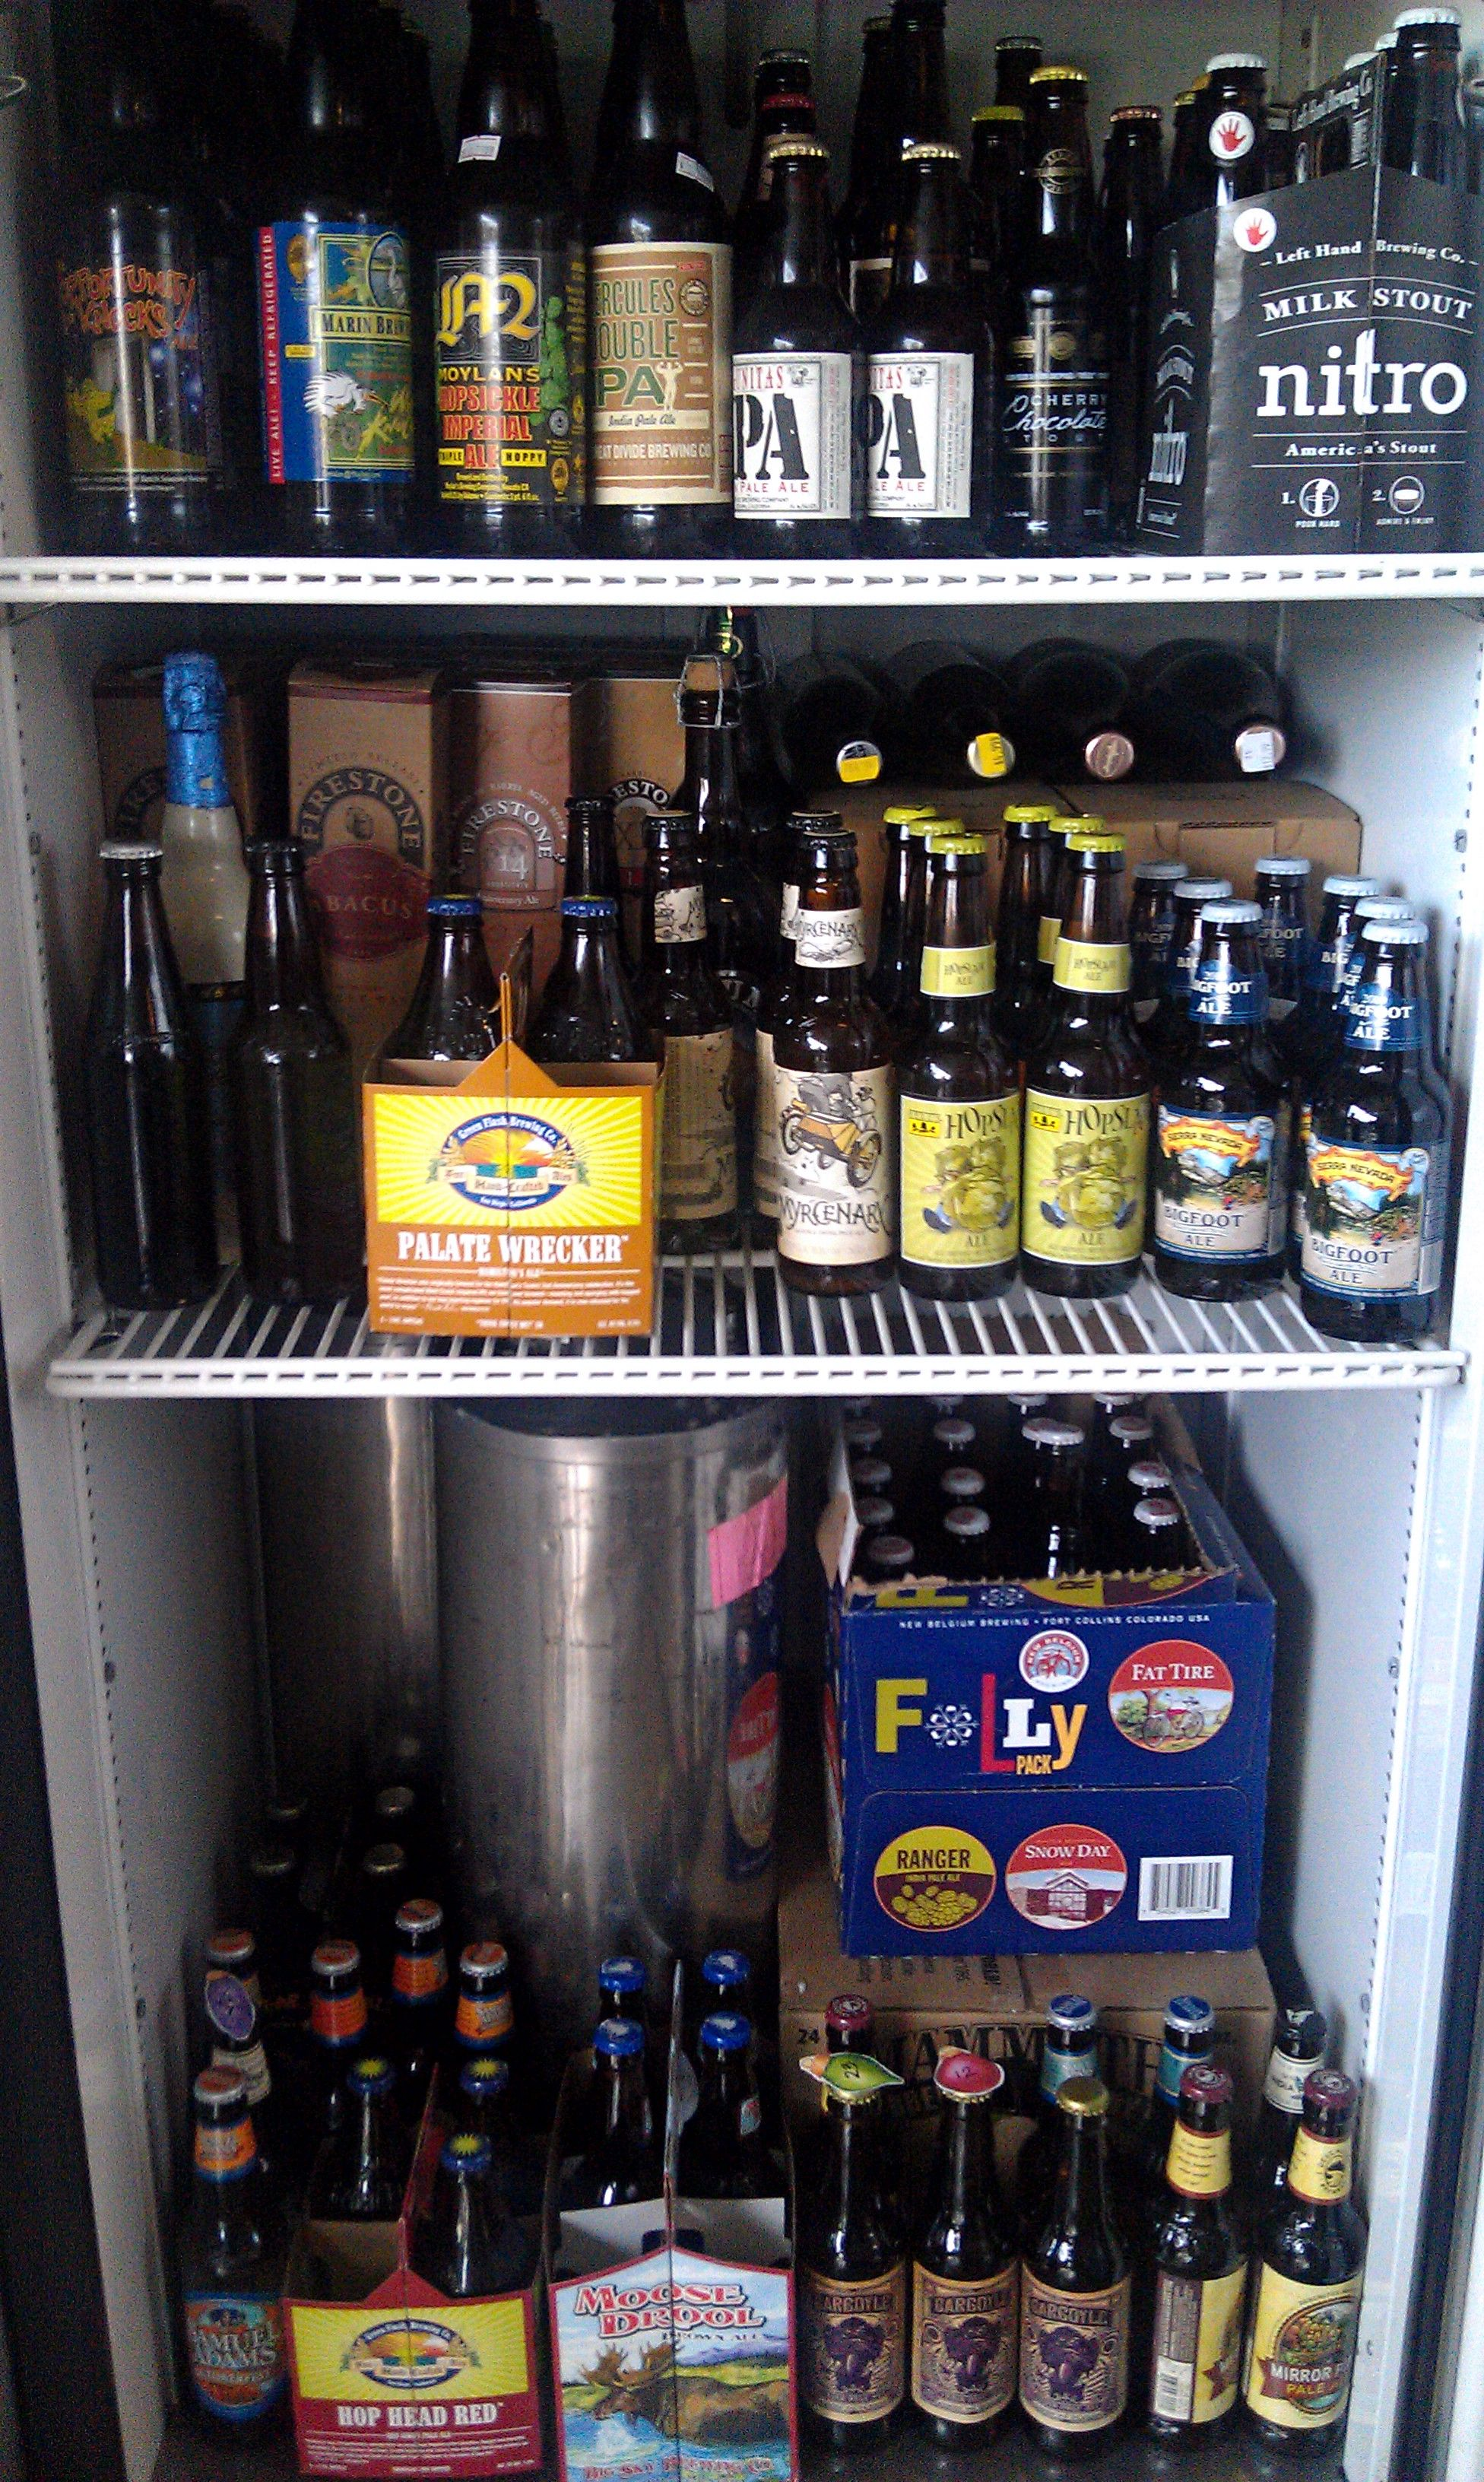 Every Garage Man Cave Should Have A Beer Fridge Full Of